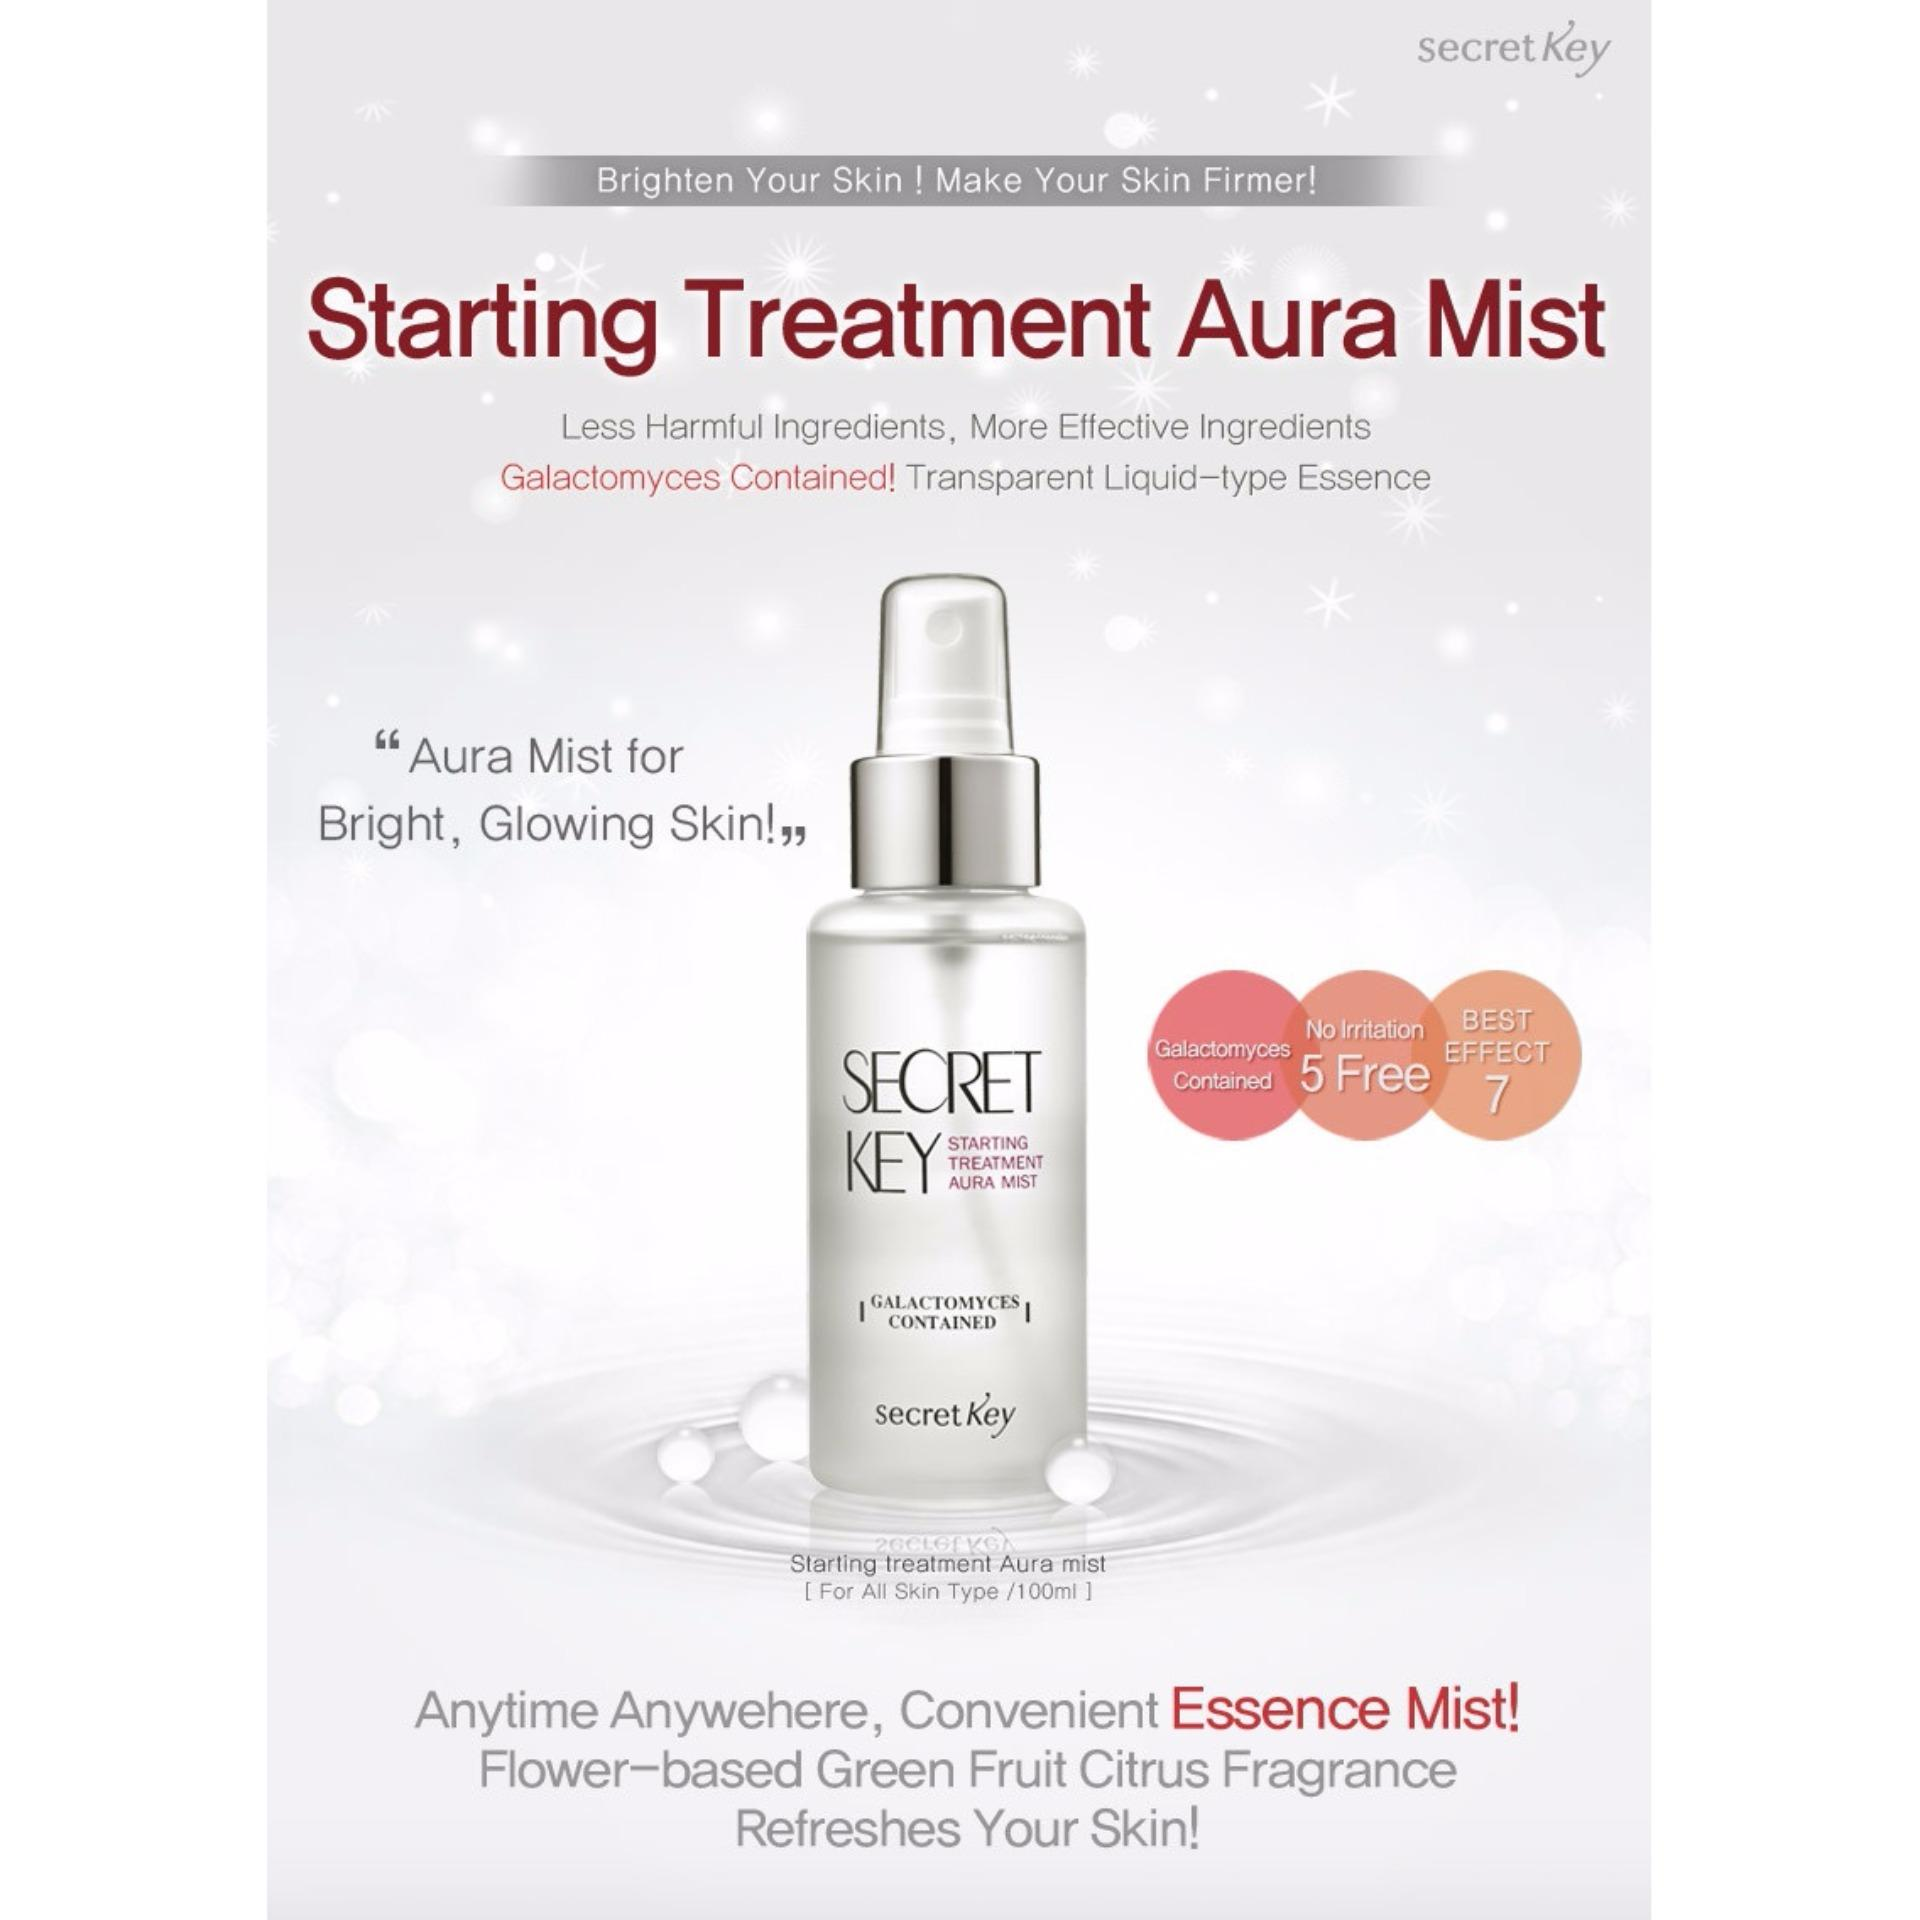 Harga Secret Key Starting Treatment Aura Mist 100 Ml Dan Spesifikasinya